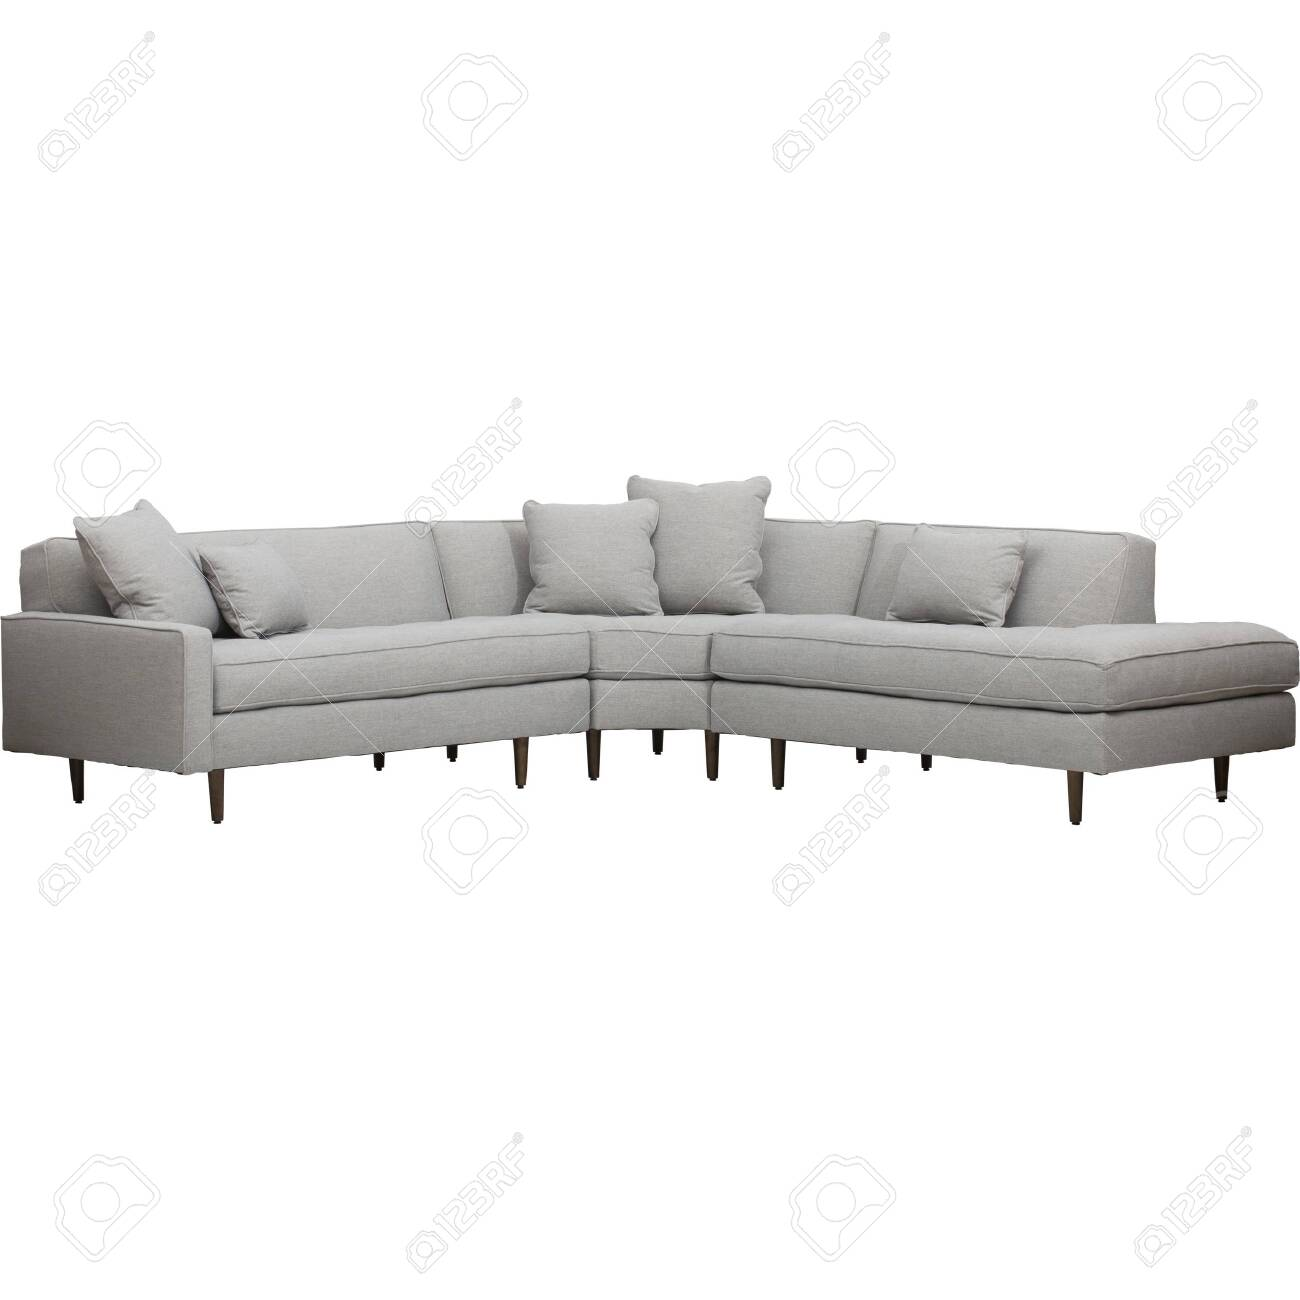 Picture of: Full Size Of Chair Stunning Sectional Couches With Recliners Stock Photo Picture And Royalty Free Image Image 135039859